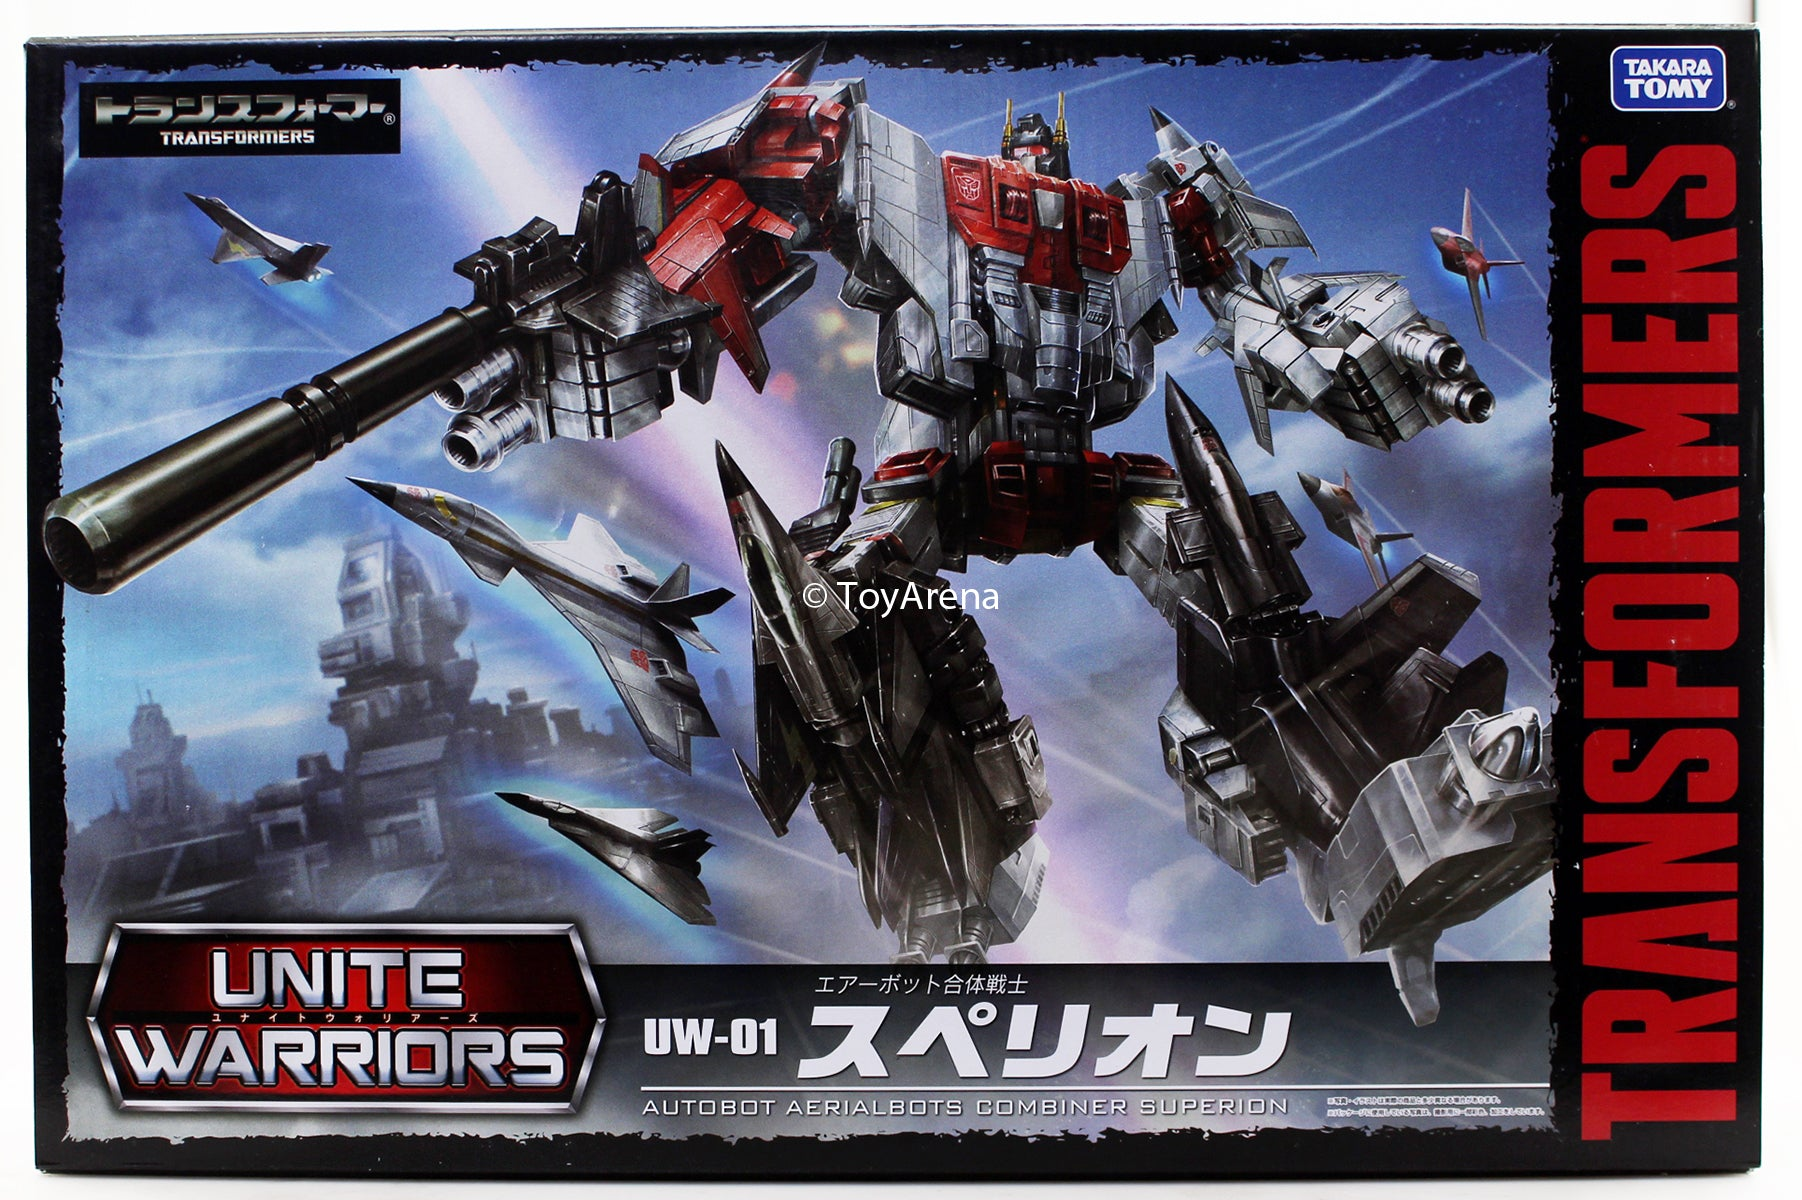 Transformers Unite Warriors